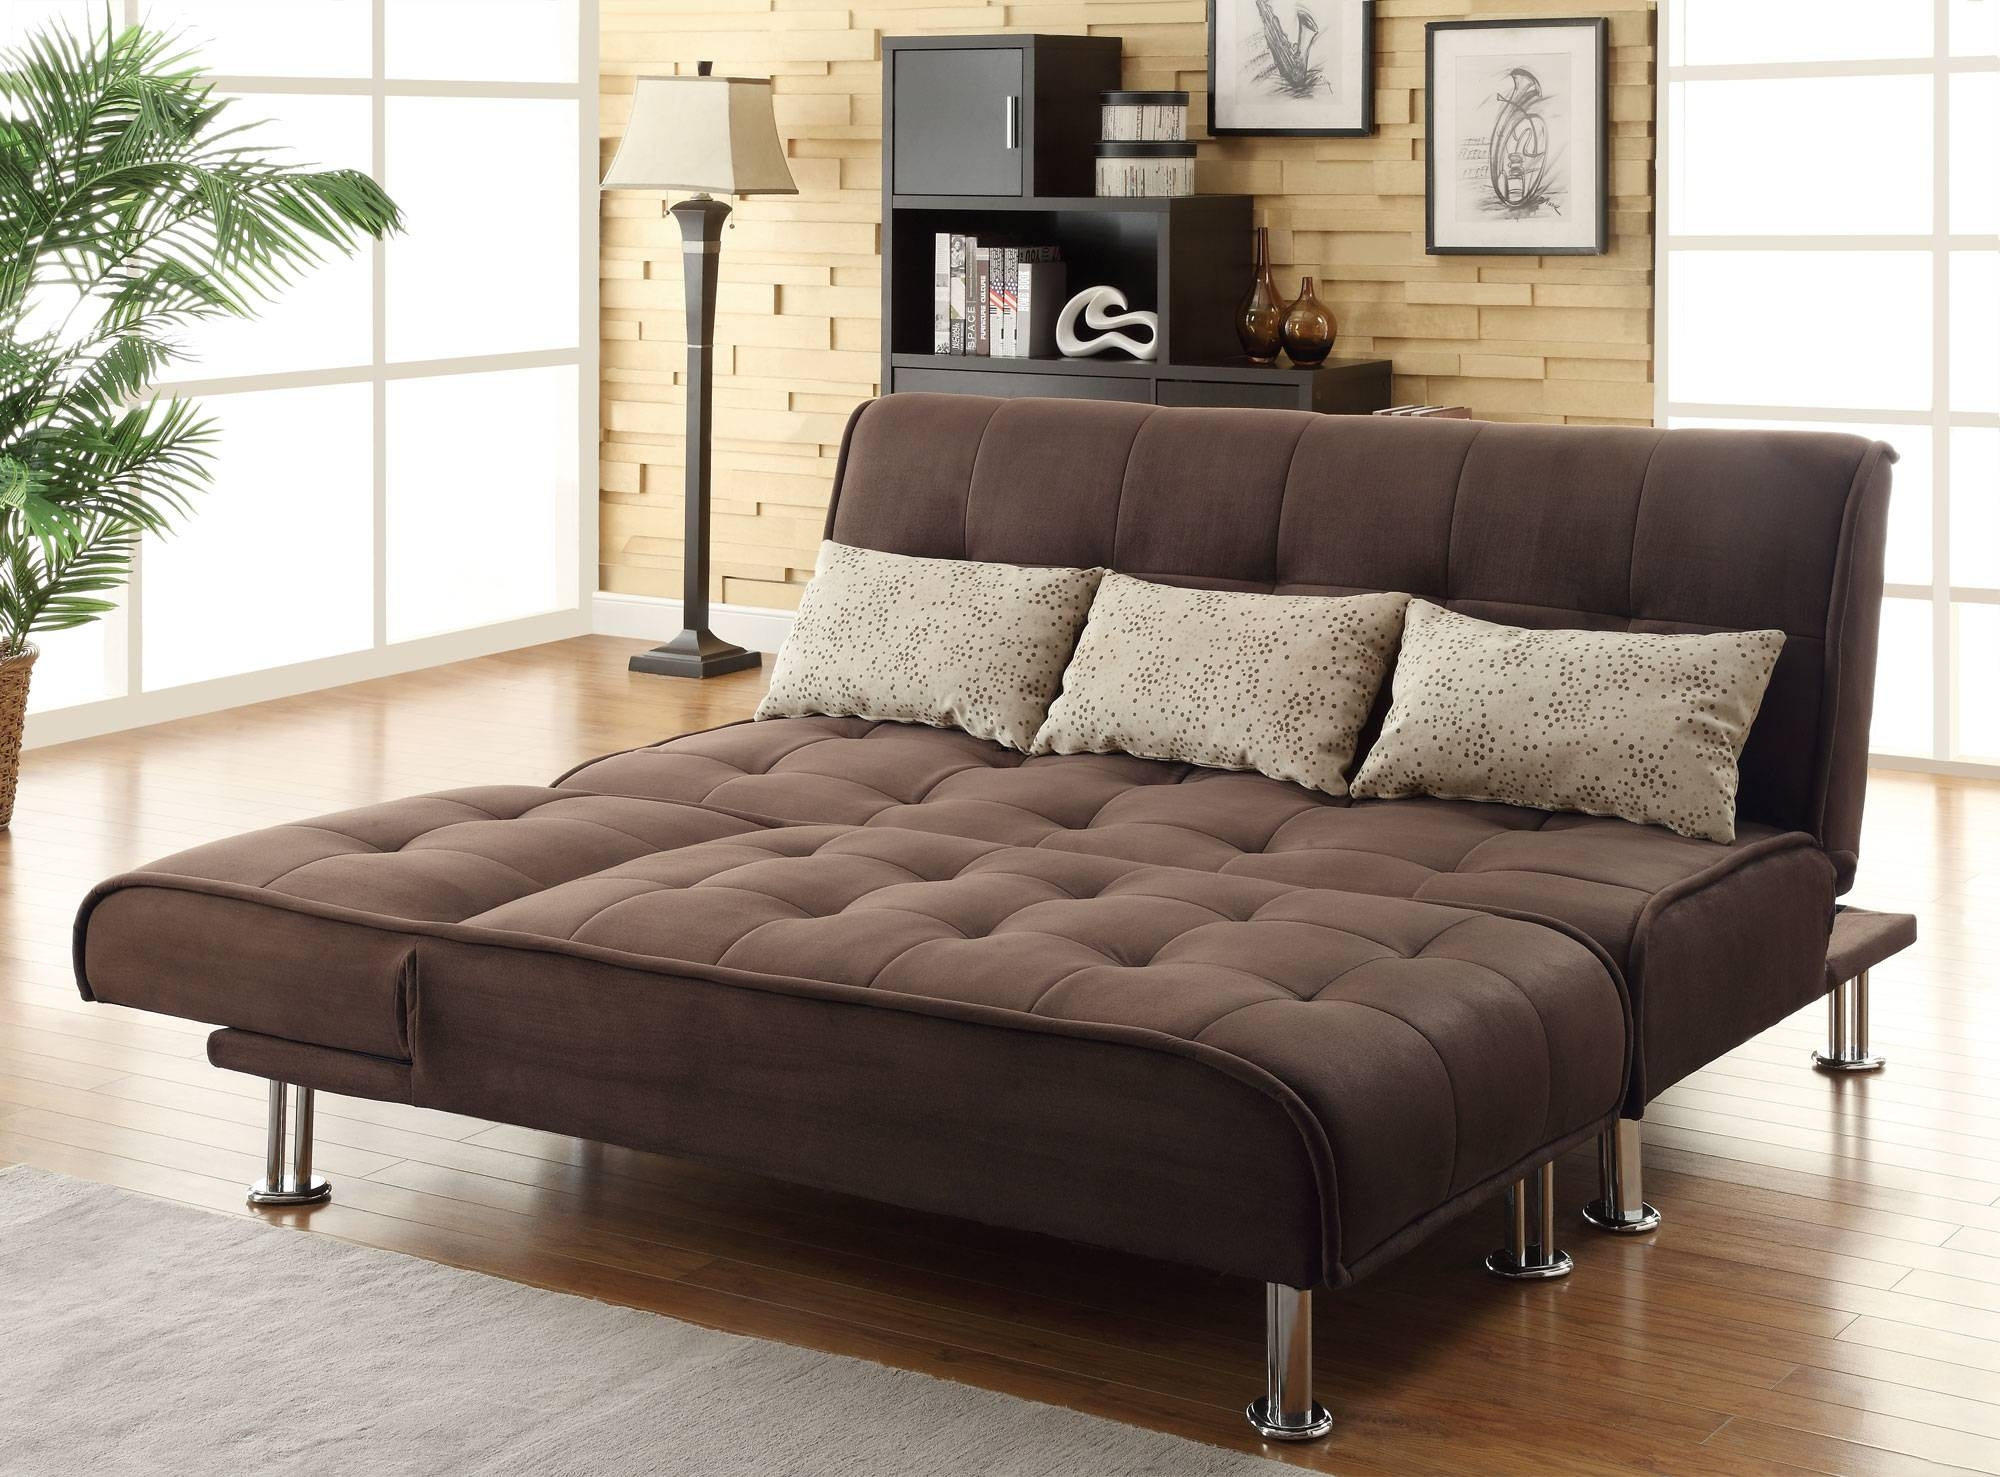 Furniture & Rug: Extraordinary Moheda Sofa Bed For Home Furniture regarding Full Size Sofa Sleepers (Image 4 of 30)